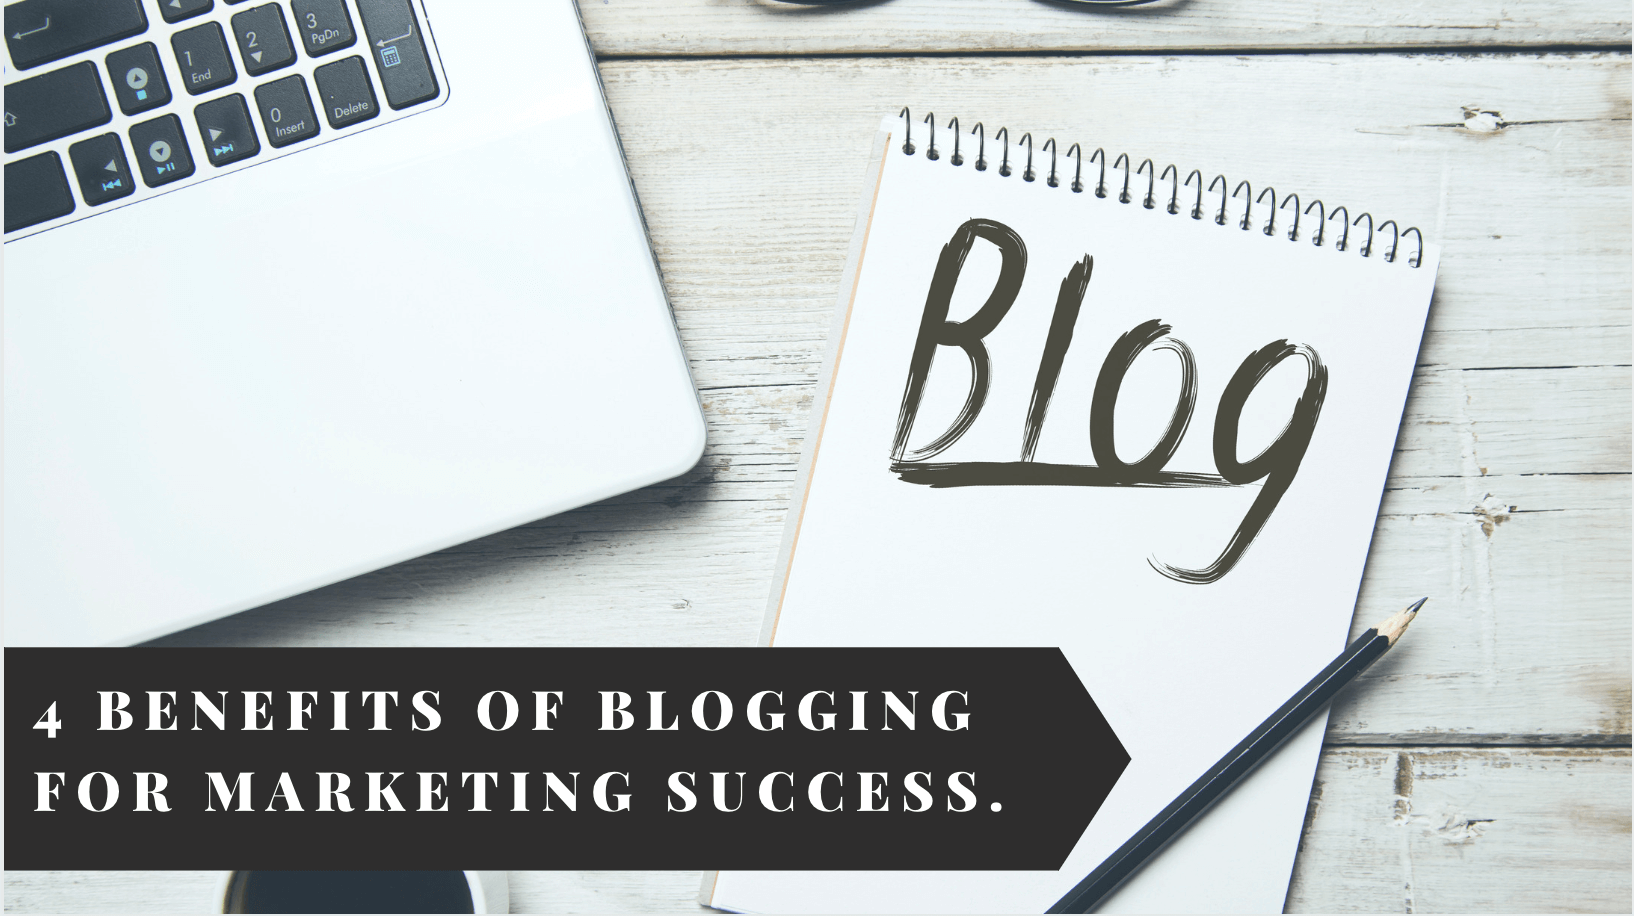 benefits of blogging for marketing and business